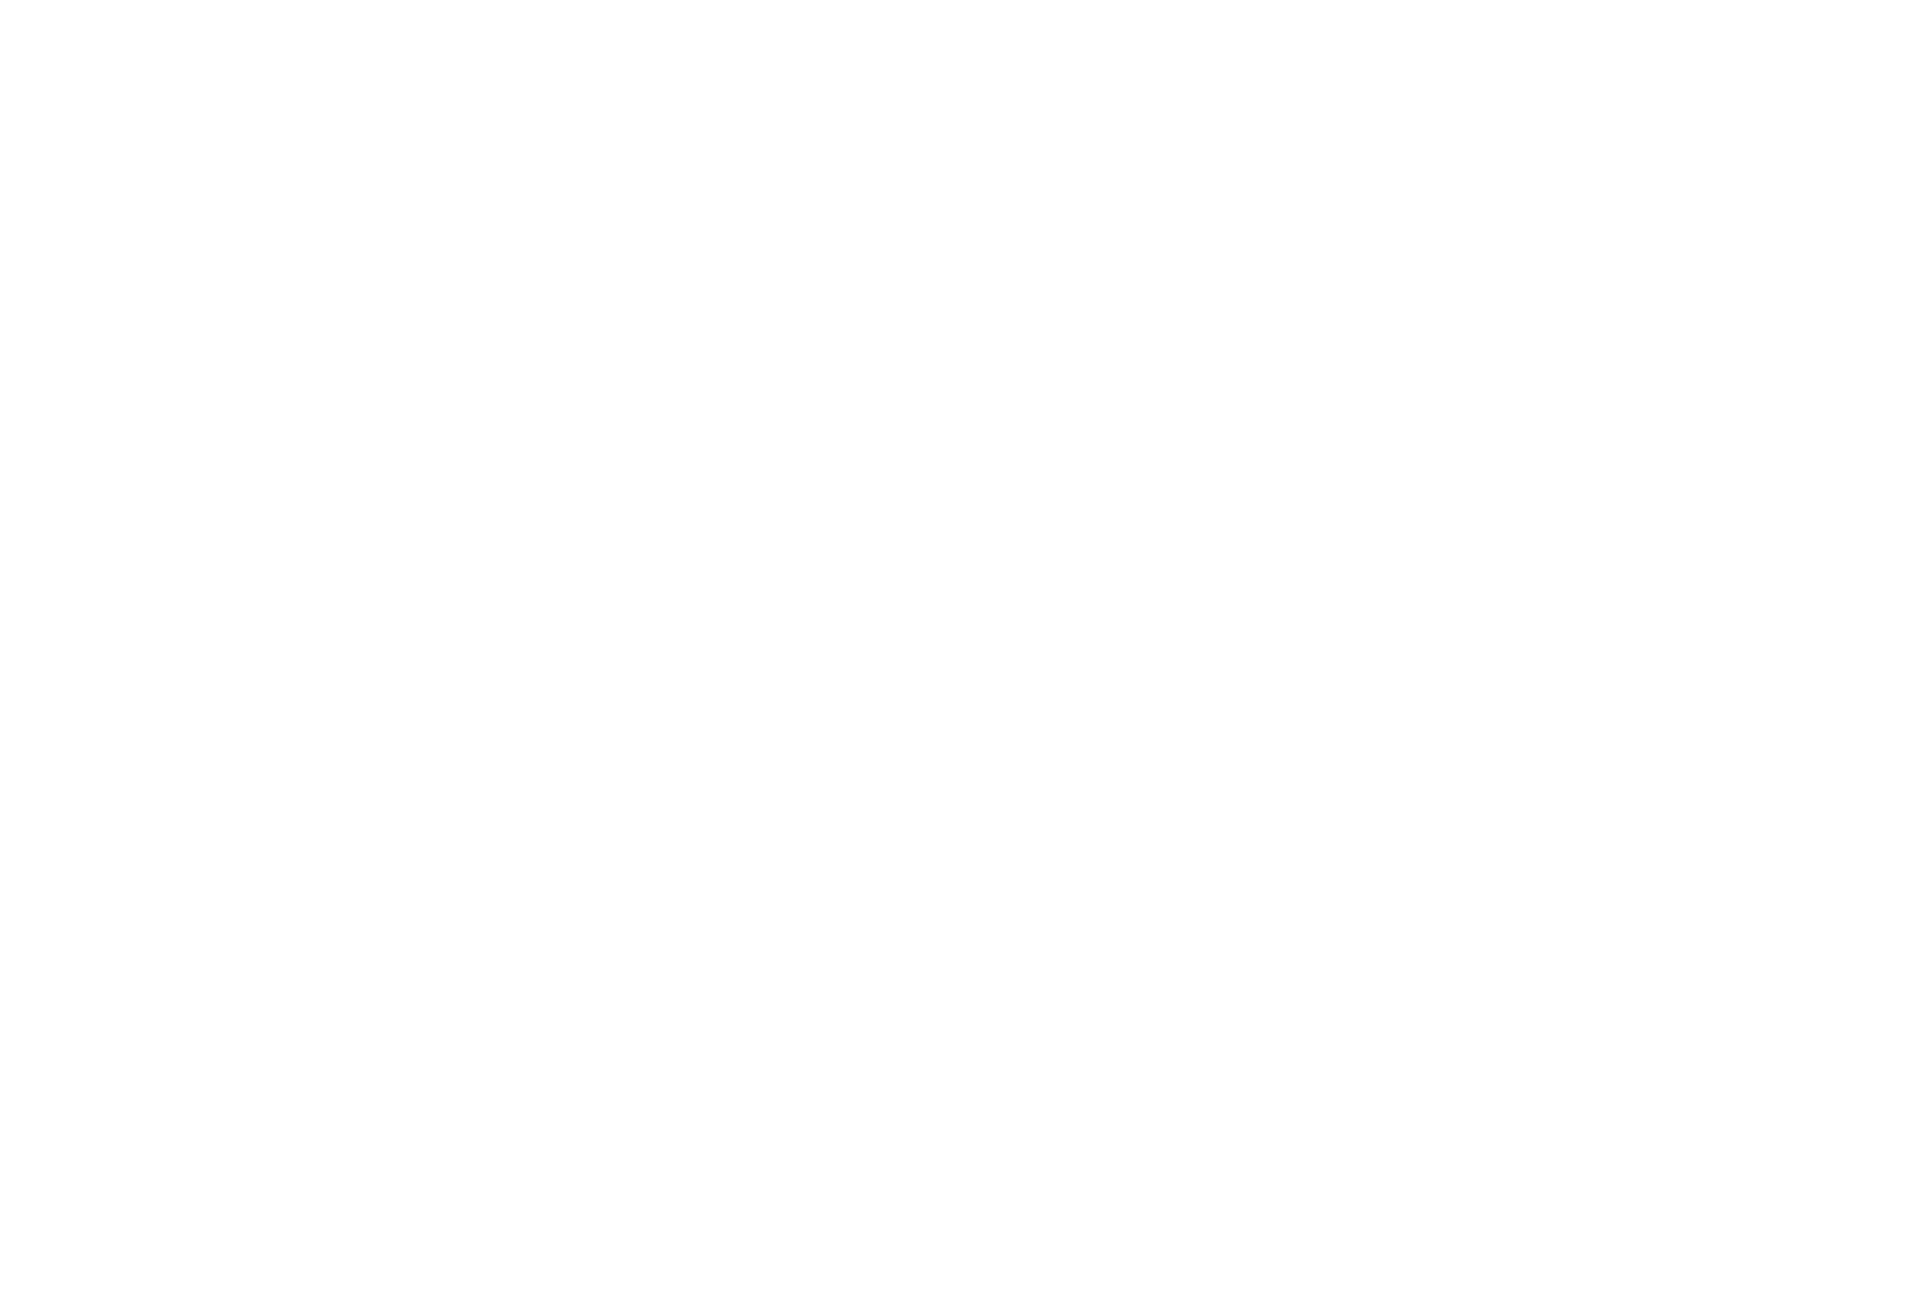 From 7 to 7 - Acoustic Folk - Country - RnR - Frankfurt am Main